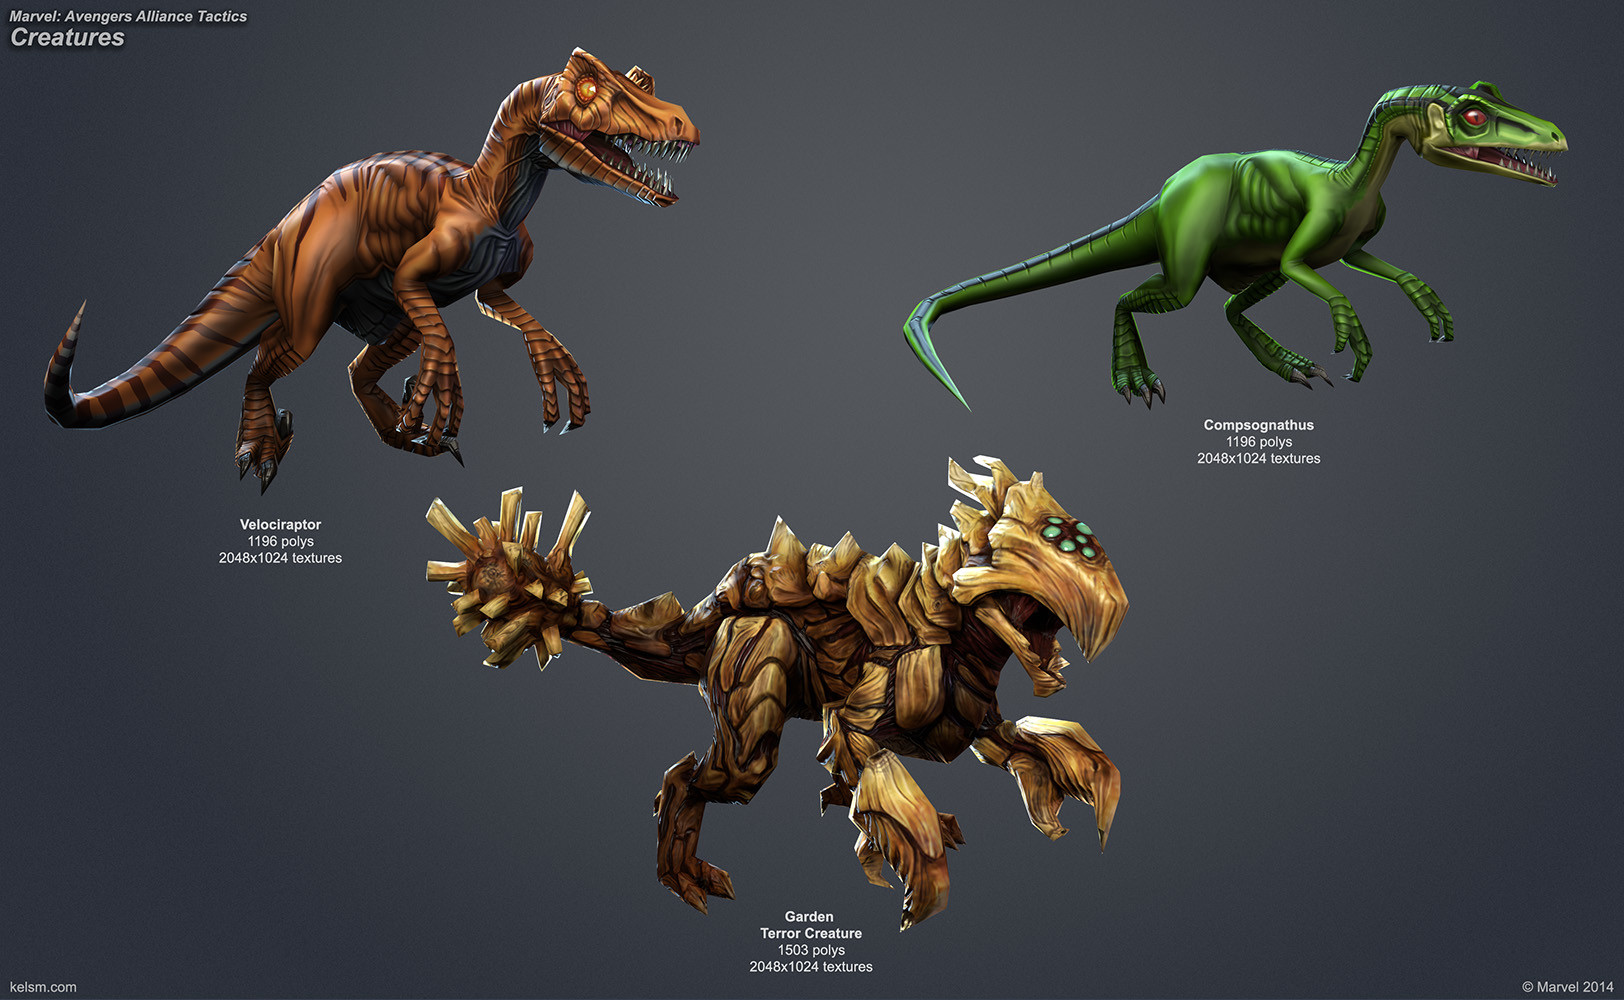 Dinos and Creature